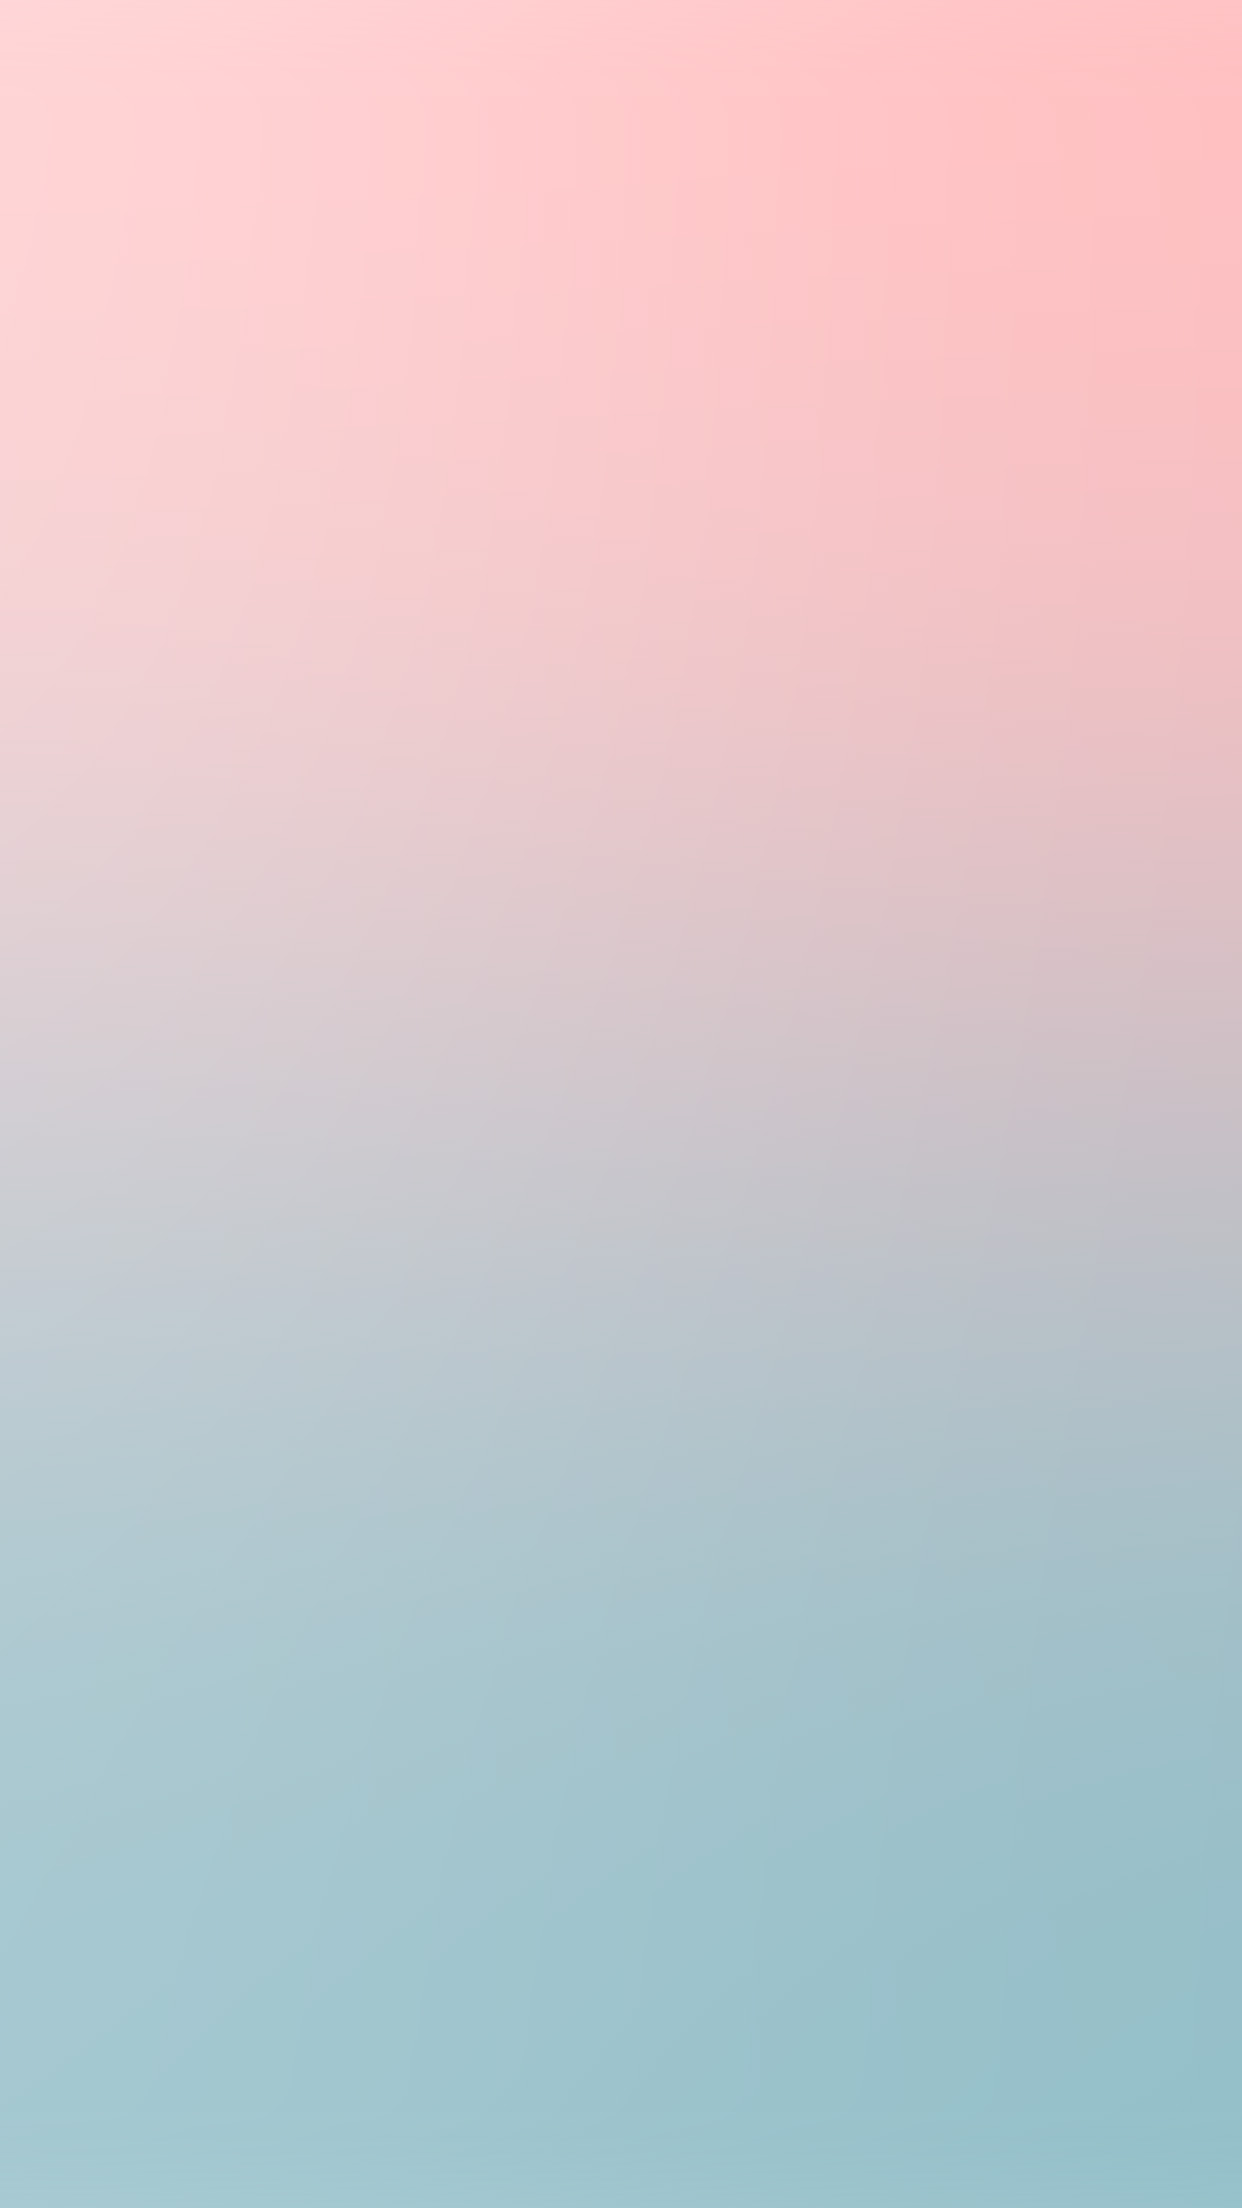 Pink Car Hd Wallpaper Sm07 Pink Blue Soft Pastel Blur Gradation Wallpaper